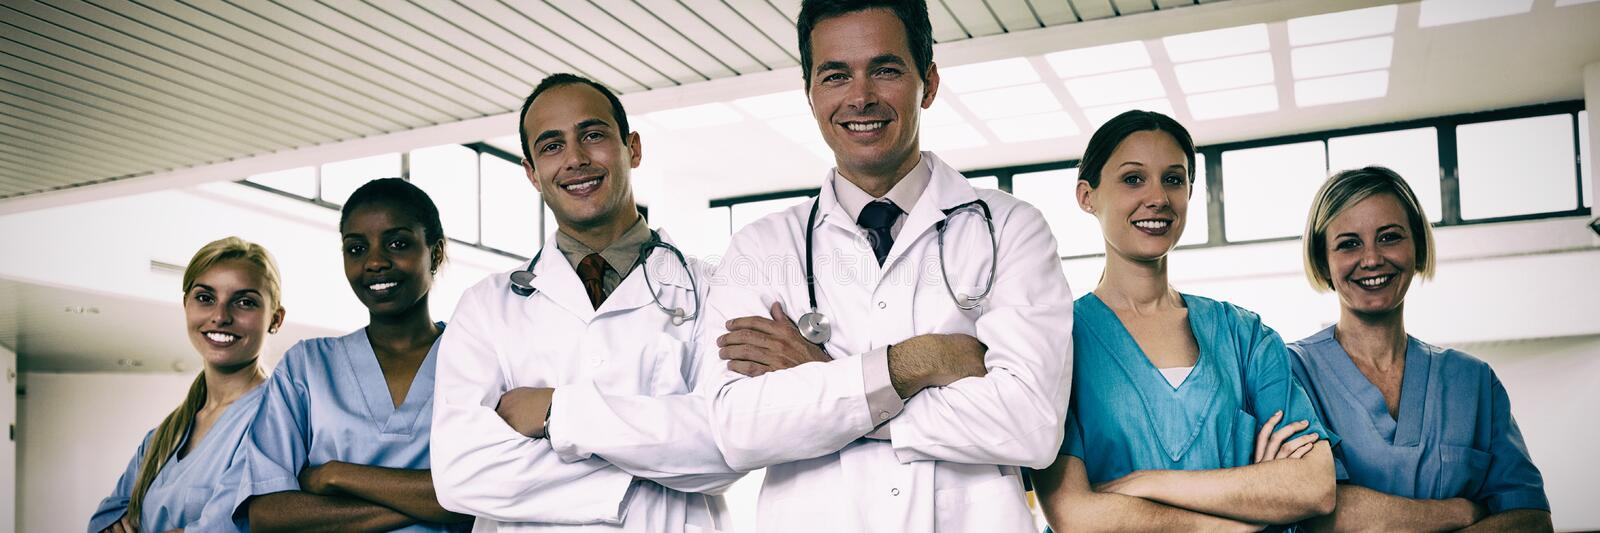 Portrait of doctors and nurses with arms crossed stock image